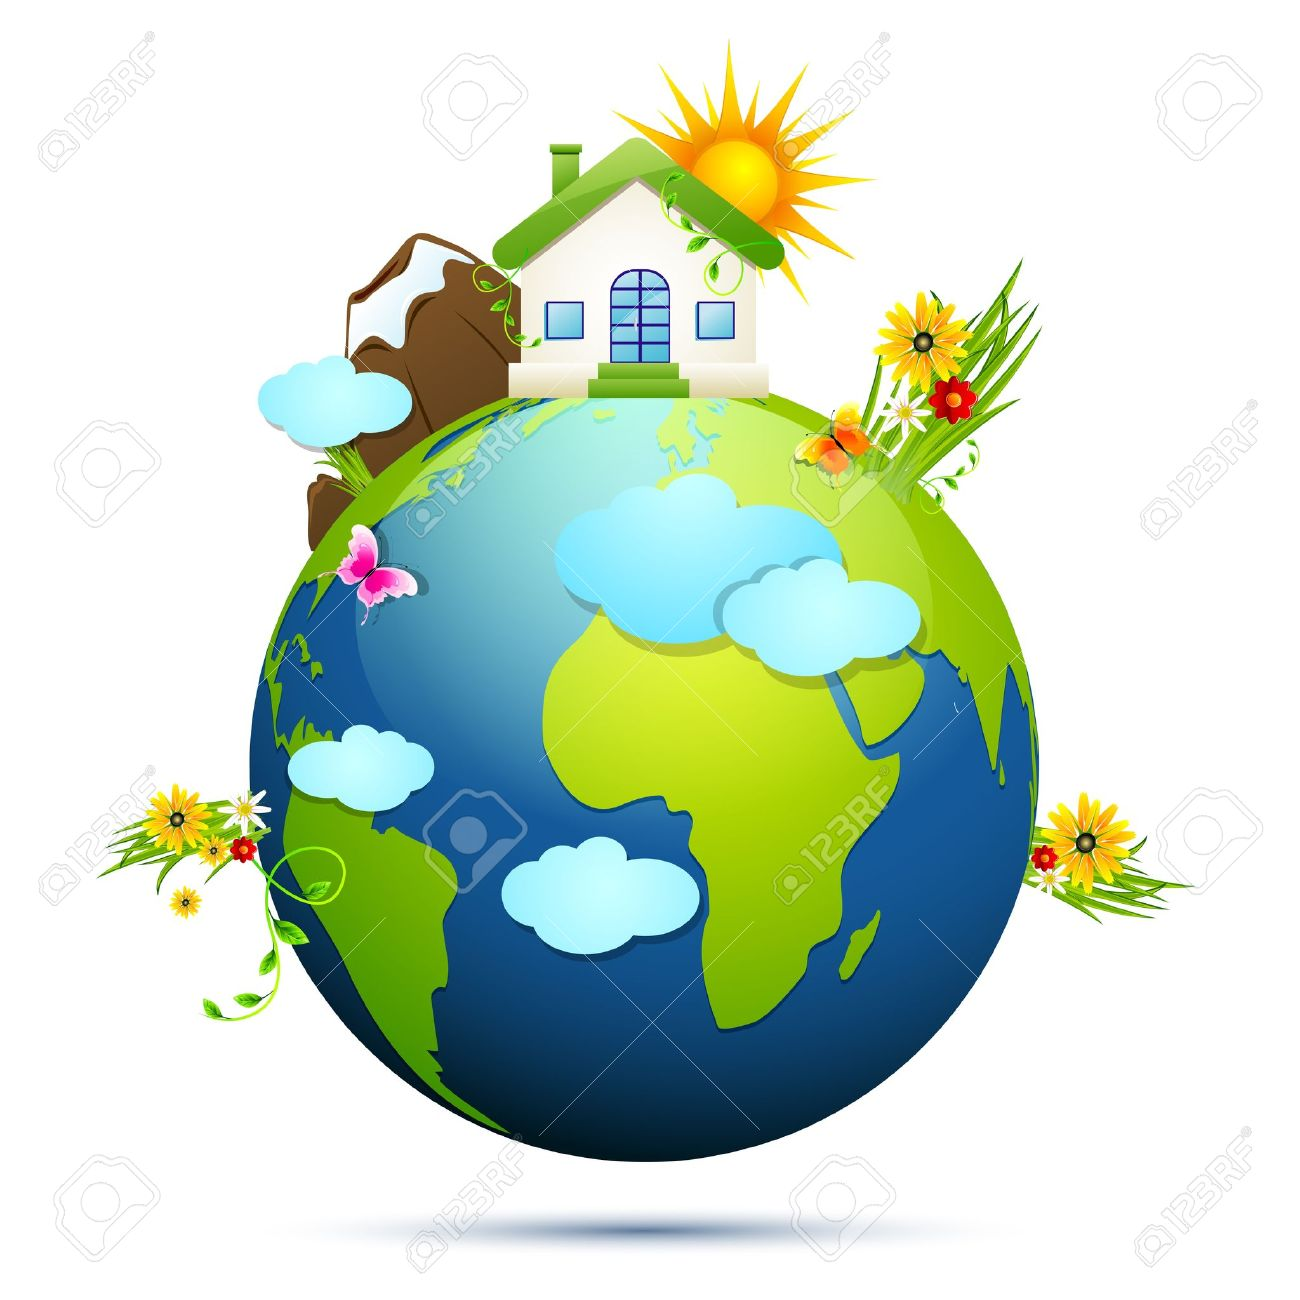 illustration of home and tree around globe showing clean earth Stock Vector - 17945457